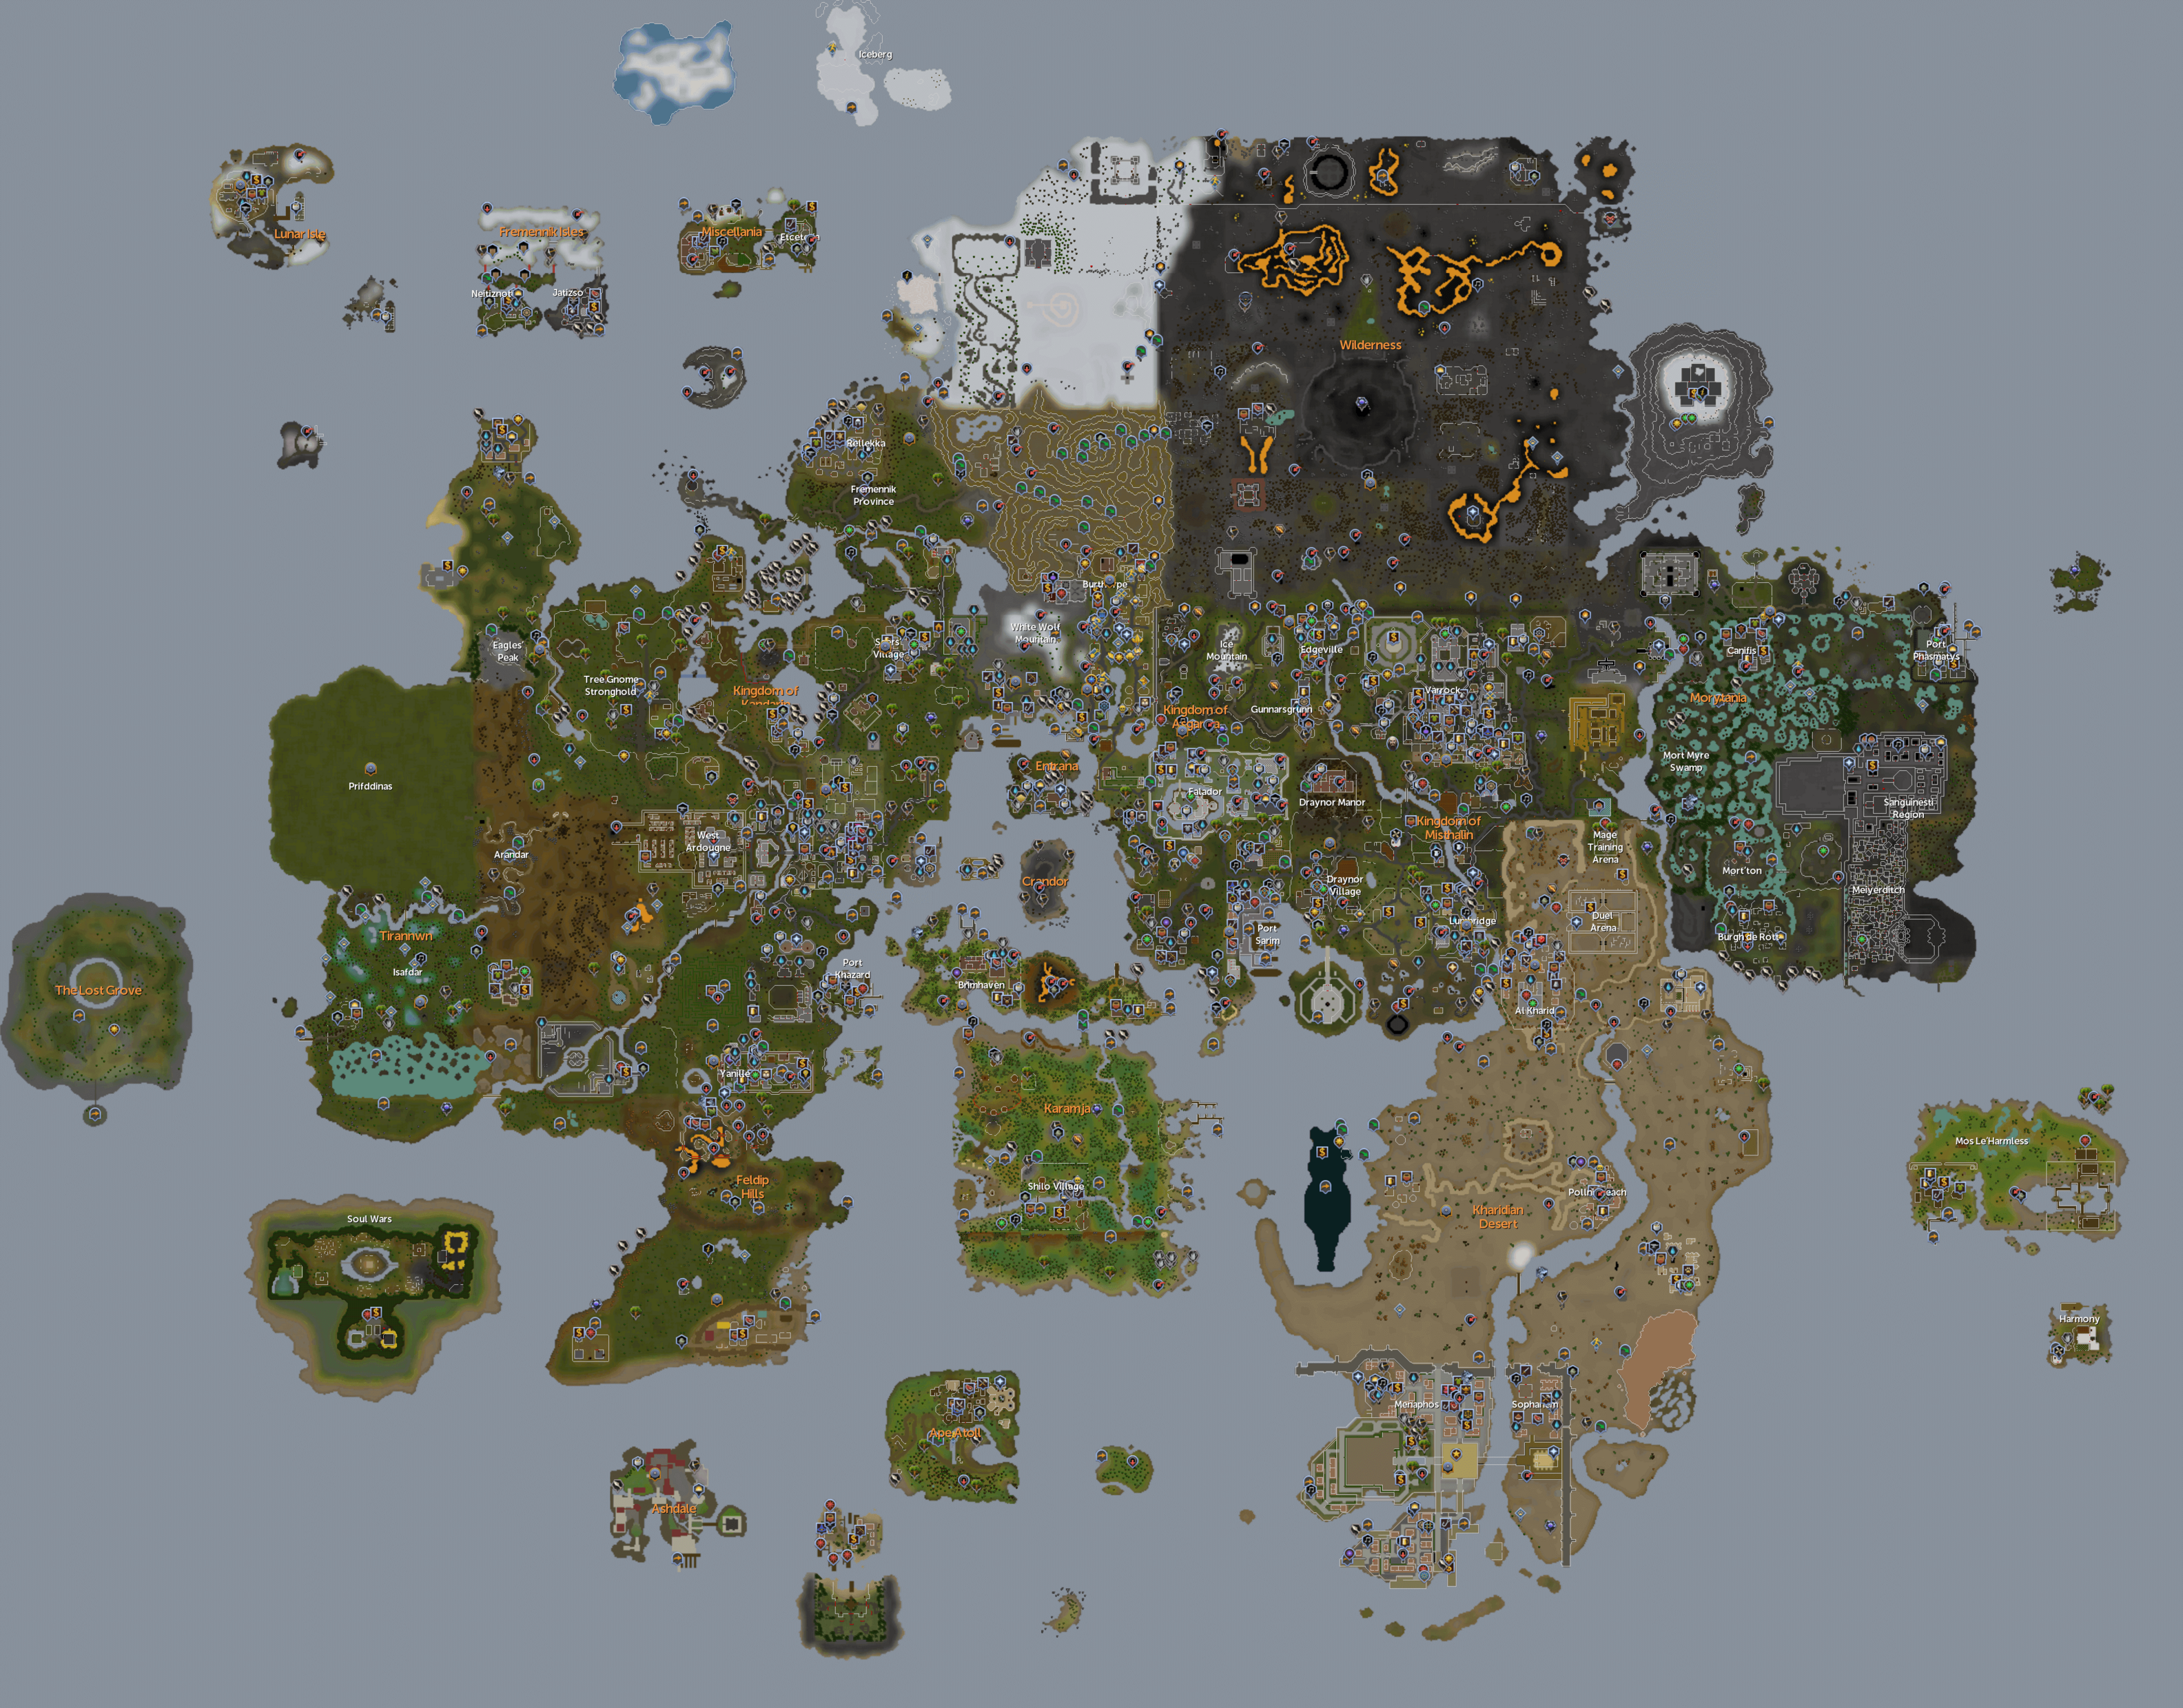 The RuneScape World map. Click on a location to view the wiki article.